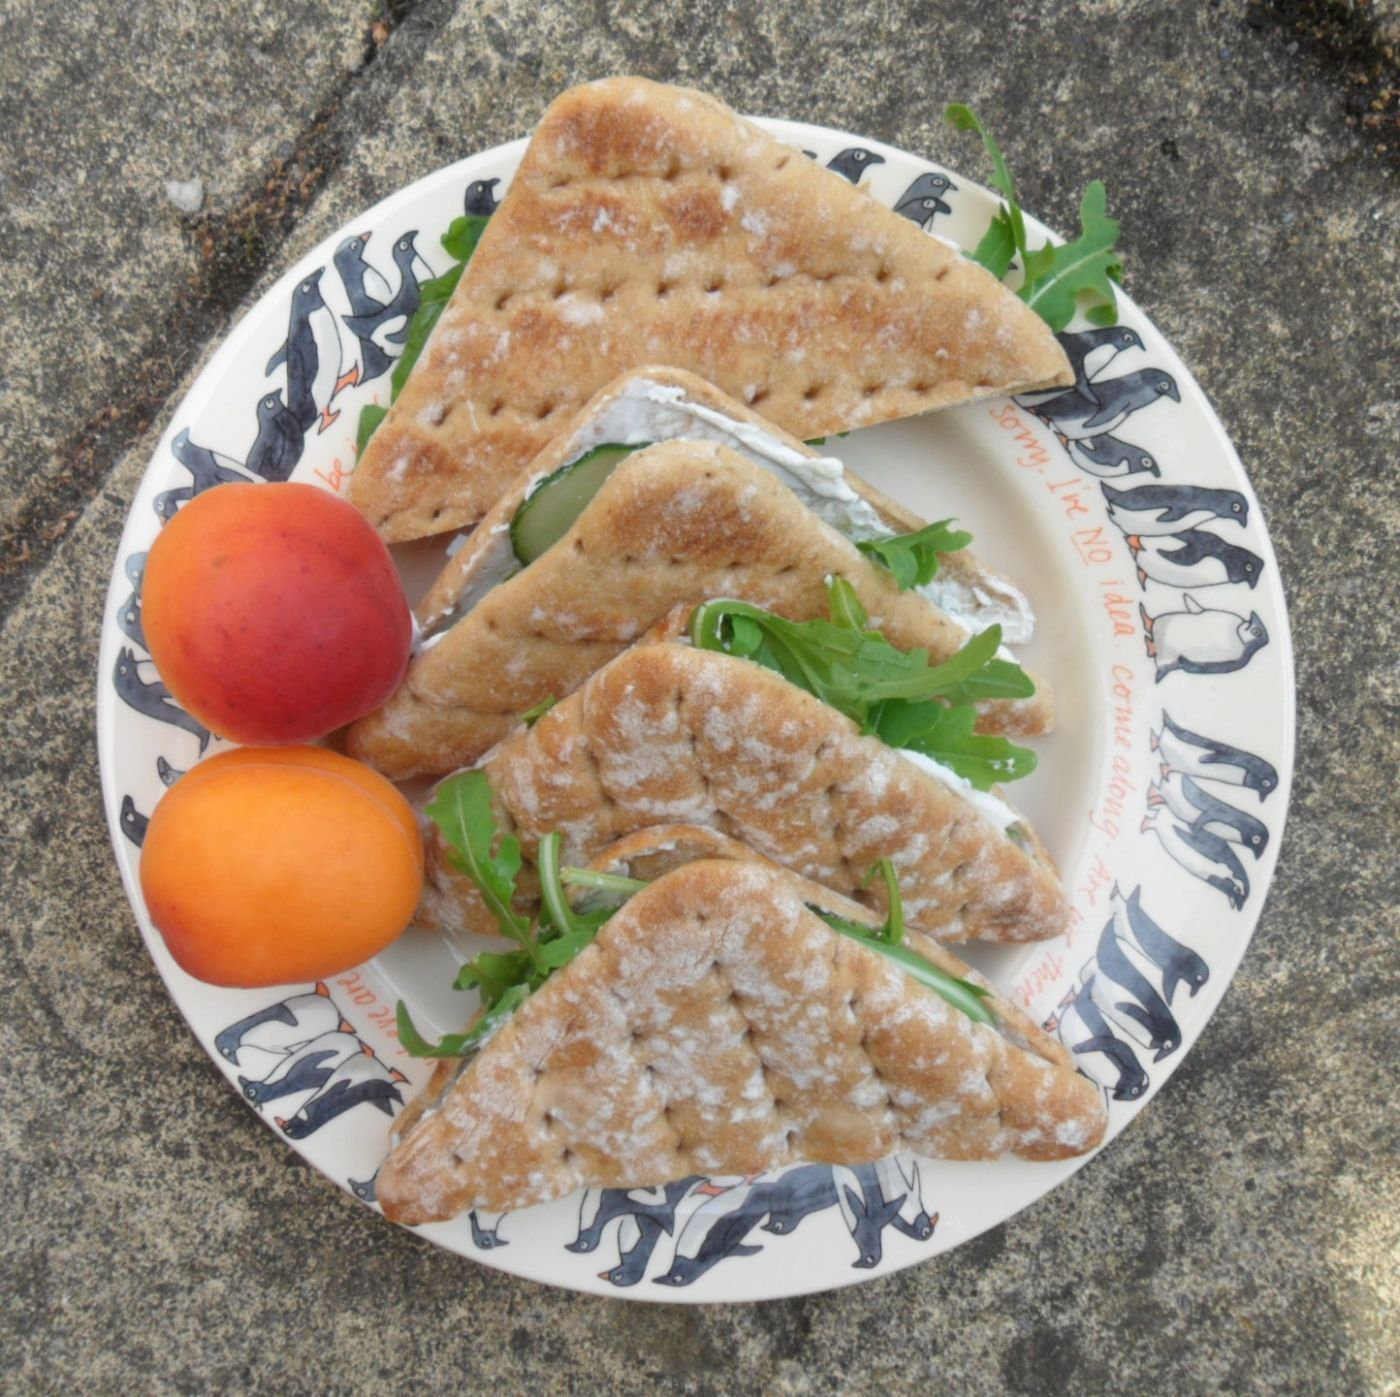 Warburtons | Diary of a Vegan in a Hurry - Recipes Using Sandwich Thins